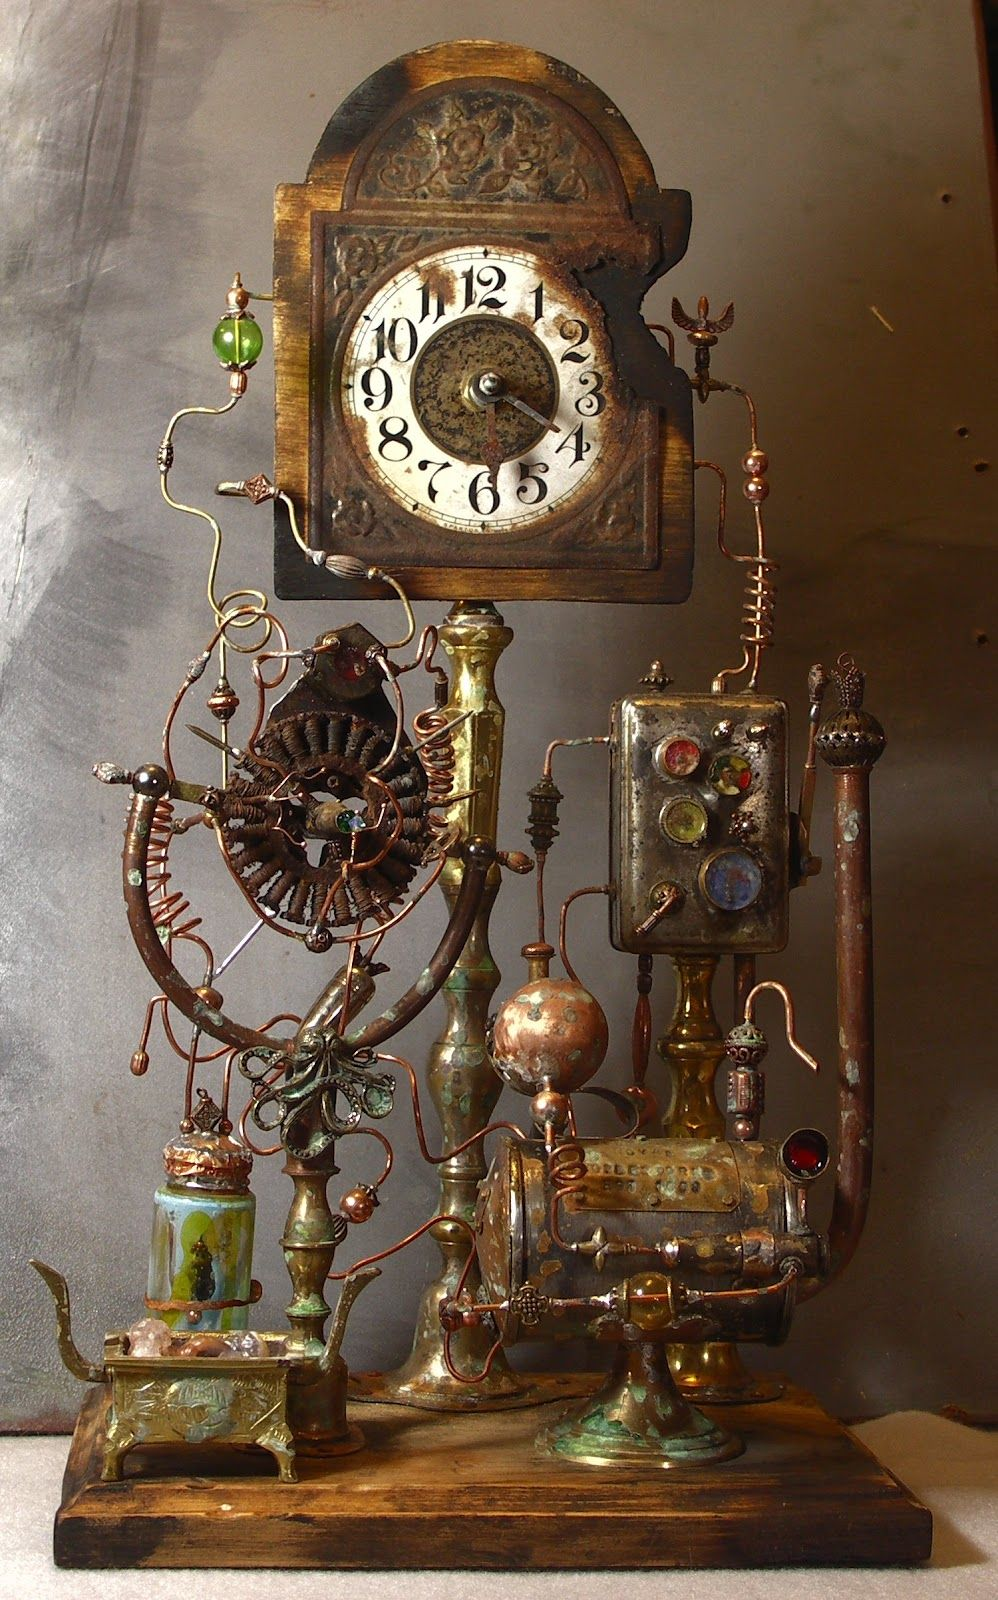 Blands Steam Powered Clock